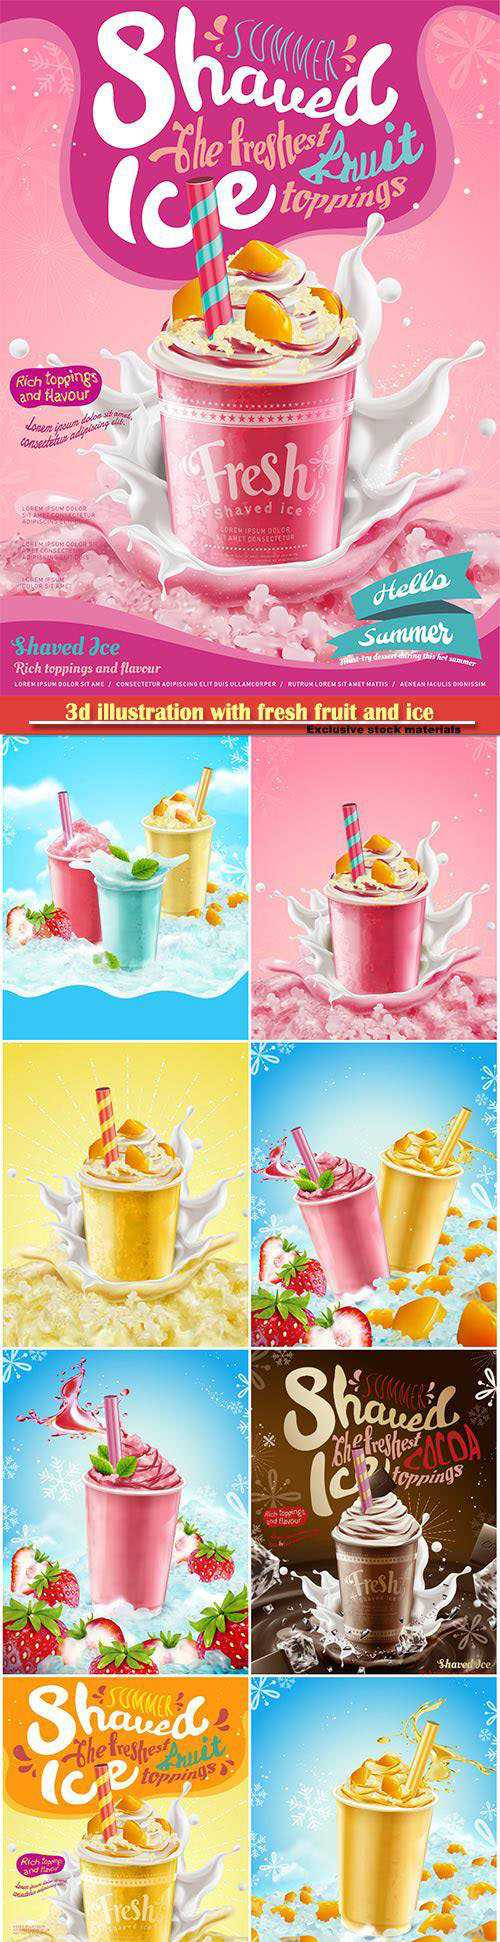 3d illustration with fresh fruit and ice elements, syrup ice shaved ads with creamy topping and spla…